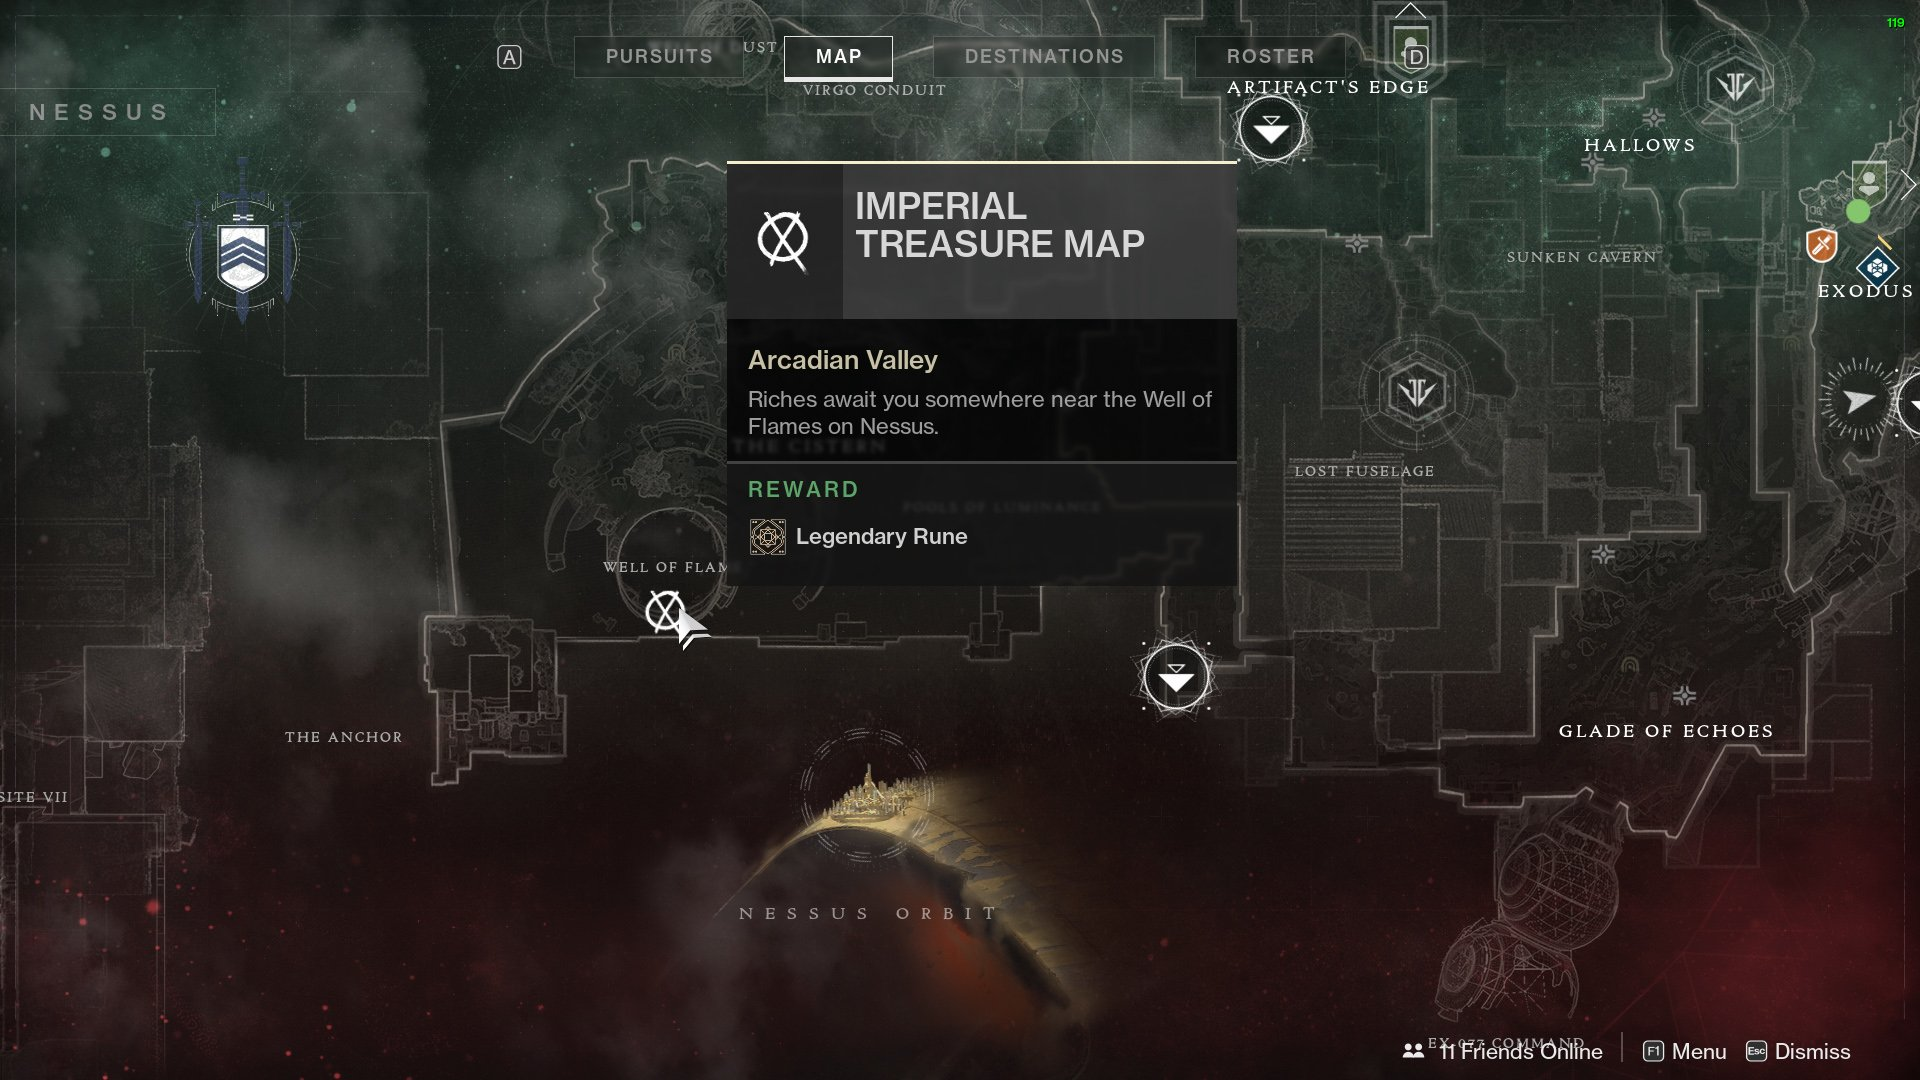 Destiny 2 Imperial Treasure Map